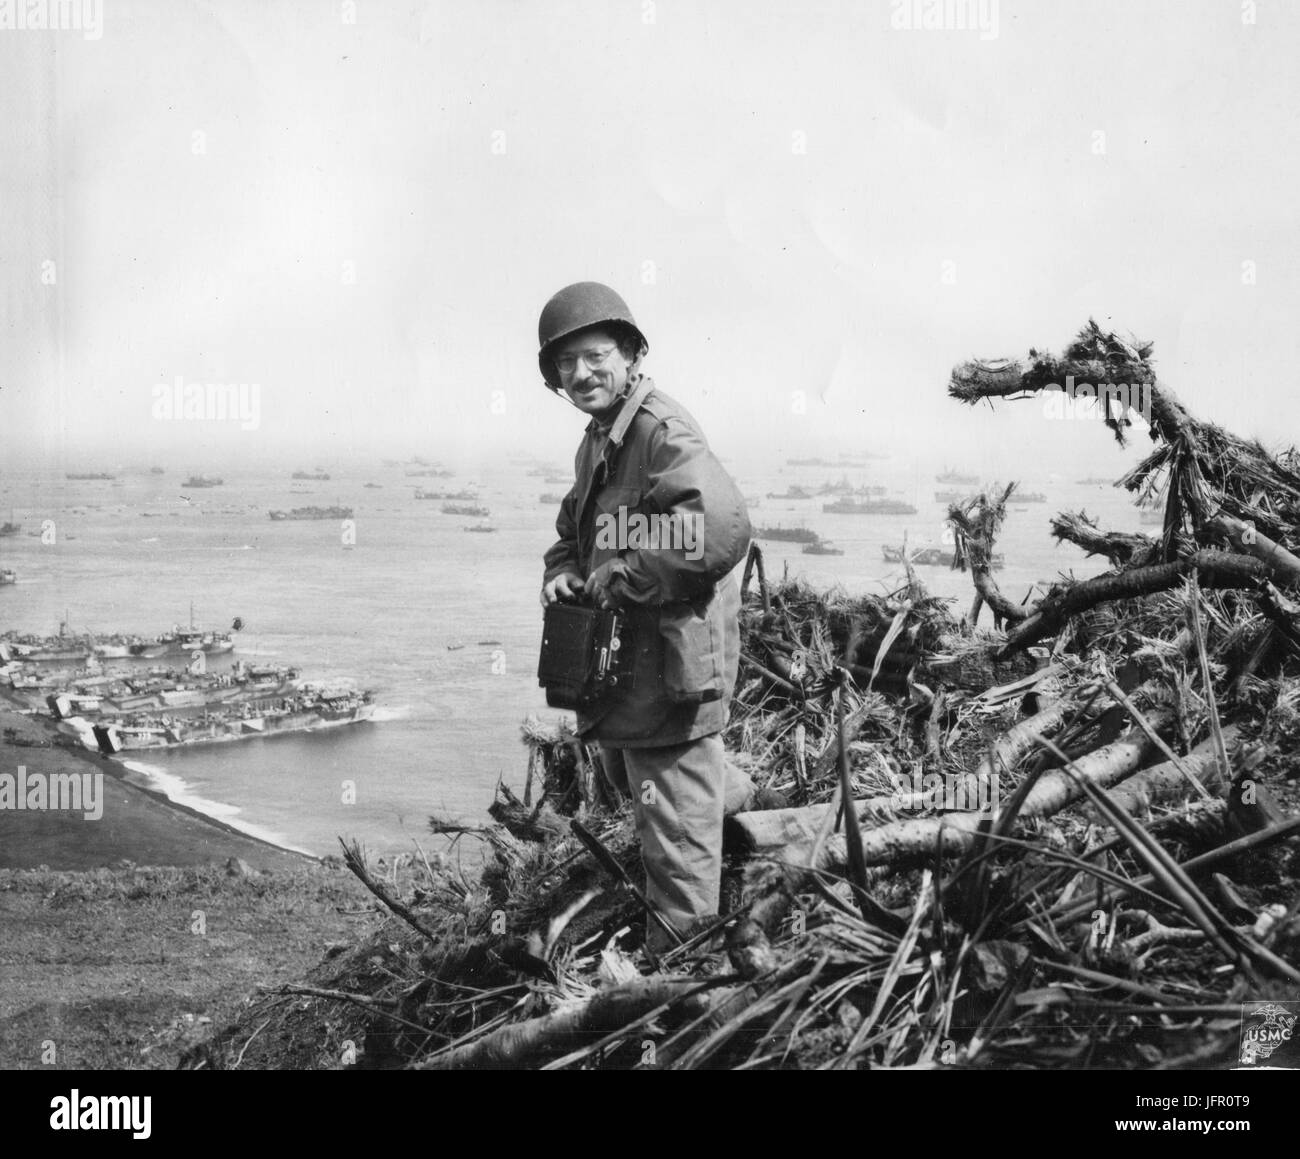 Associated Press photographer Joe Rosenthal posing on top of Mt. Suribachi, Iwo Jima, March 1, 1945 - Stock Image